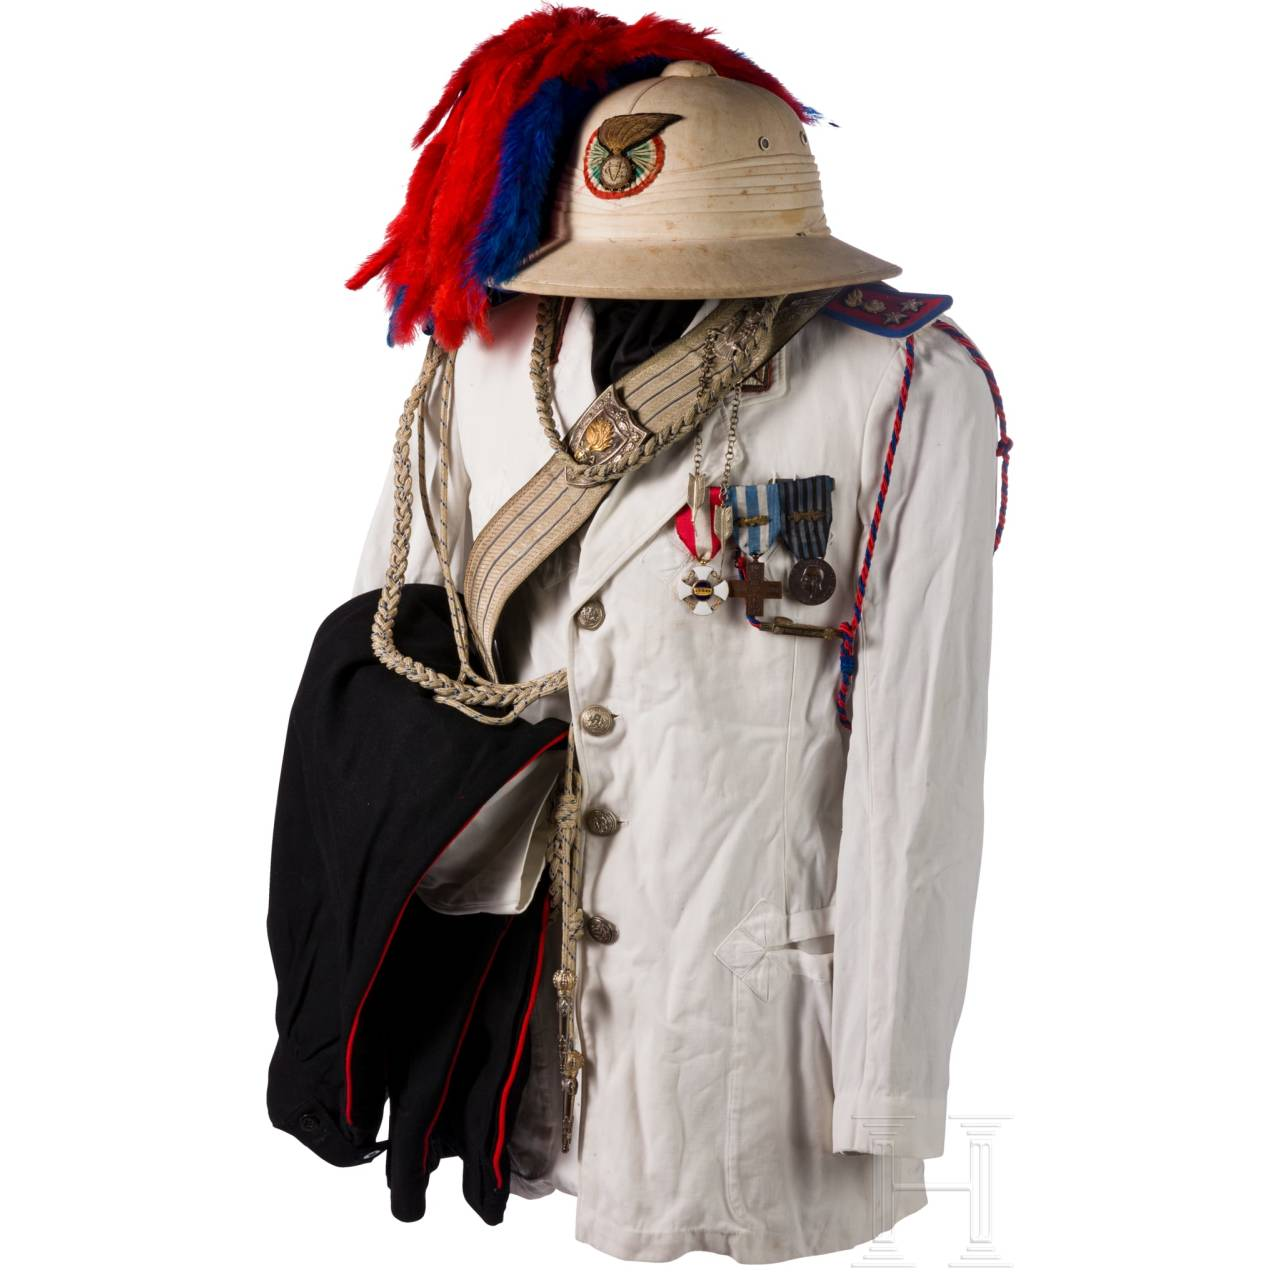 A tropical uniform for officers of the Colonial Carabinieri, until 1946